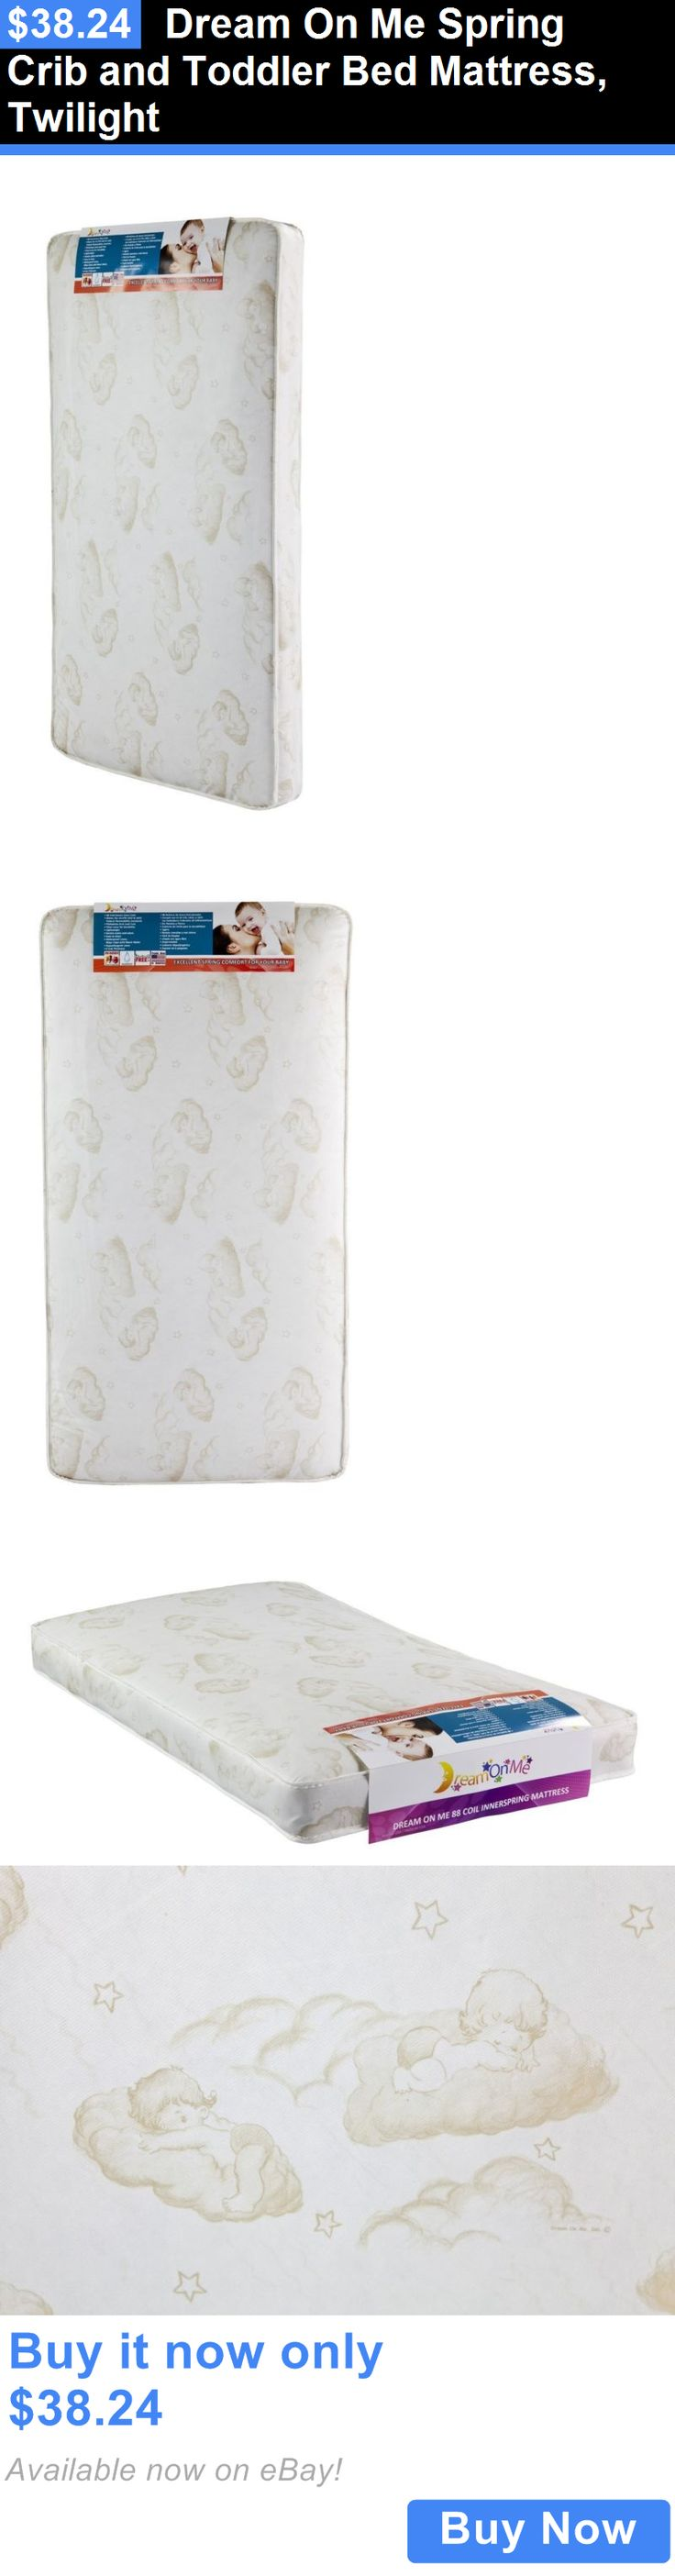 Baby Nursery: Dream On Me Spring Crib And Toddler Bed Mattress, Twilight BUY IT NOW ONLY: $38.24